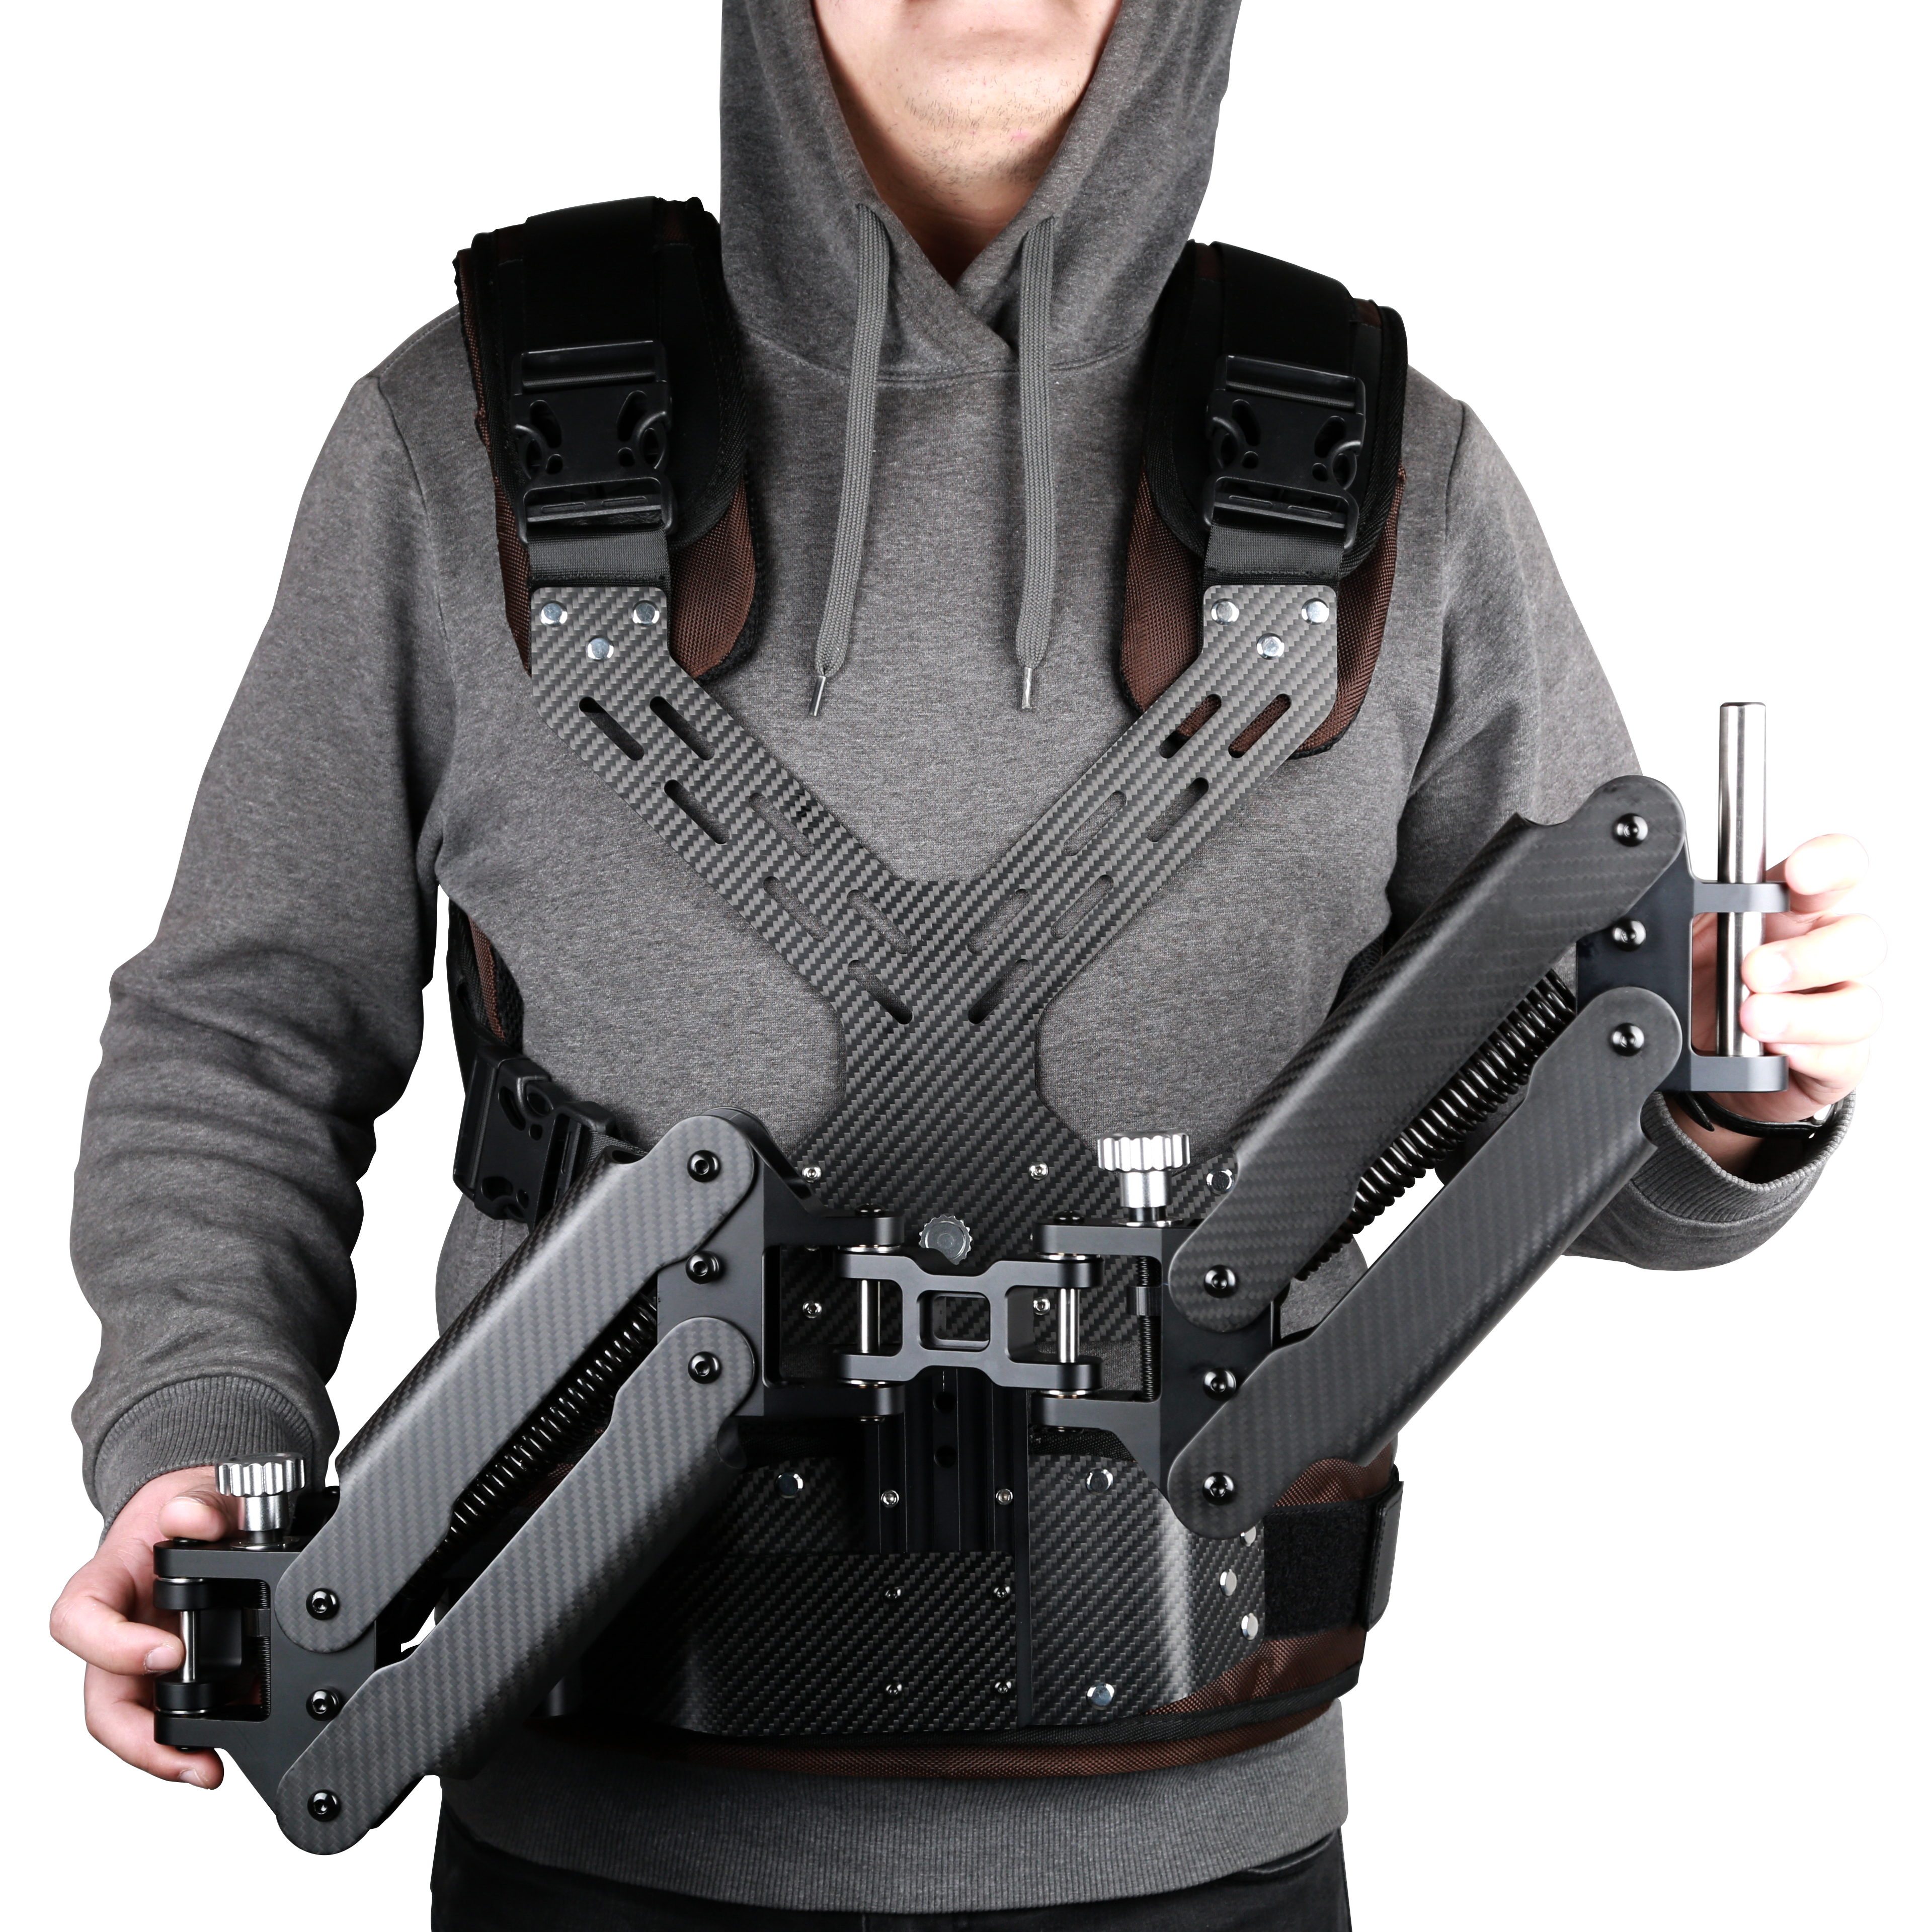 Carbon Fiber Steadicam Camera Vest with dual Arm